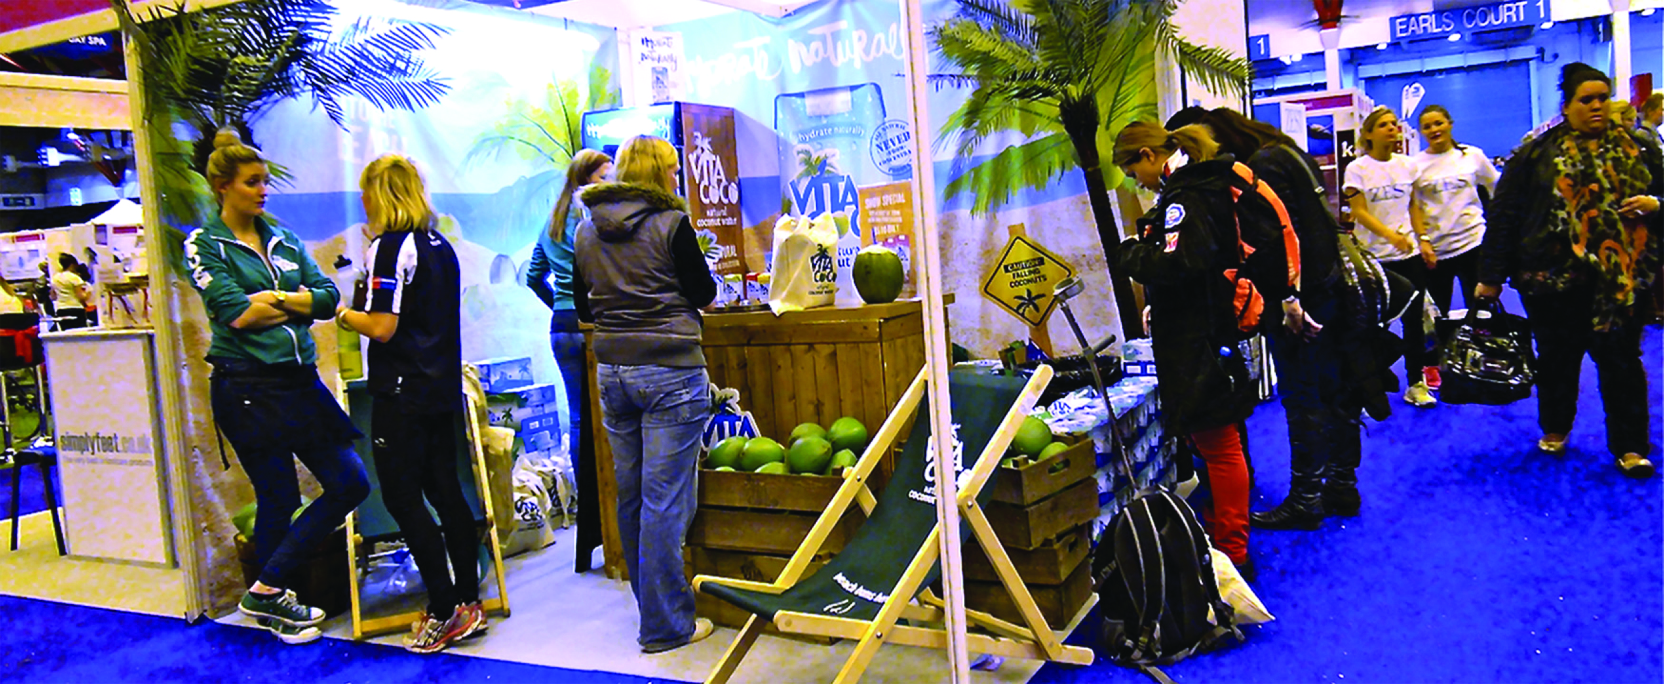 Photo of a Vita Coco booth at a convention.